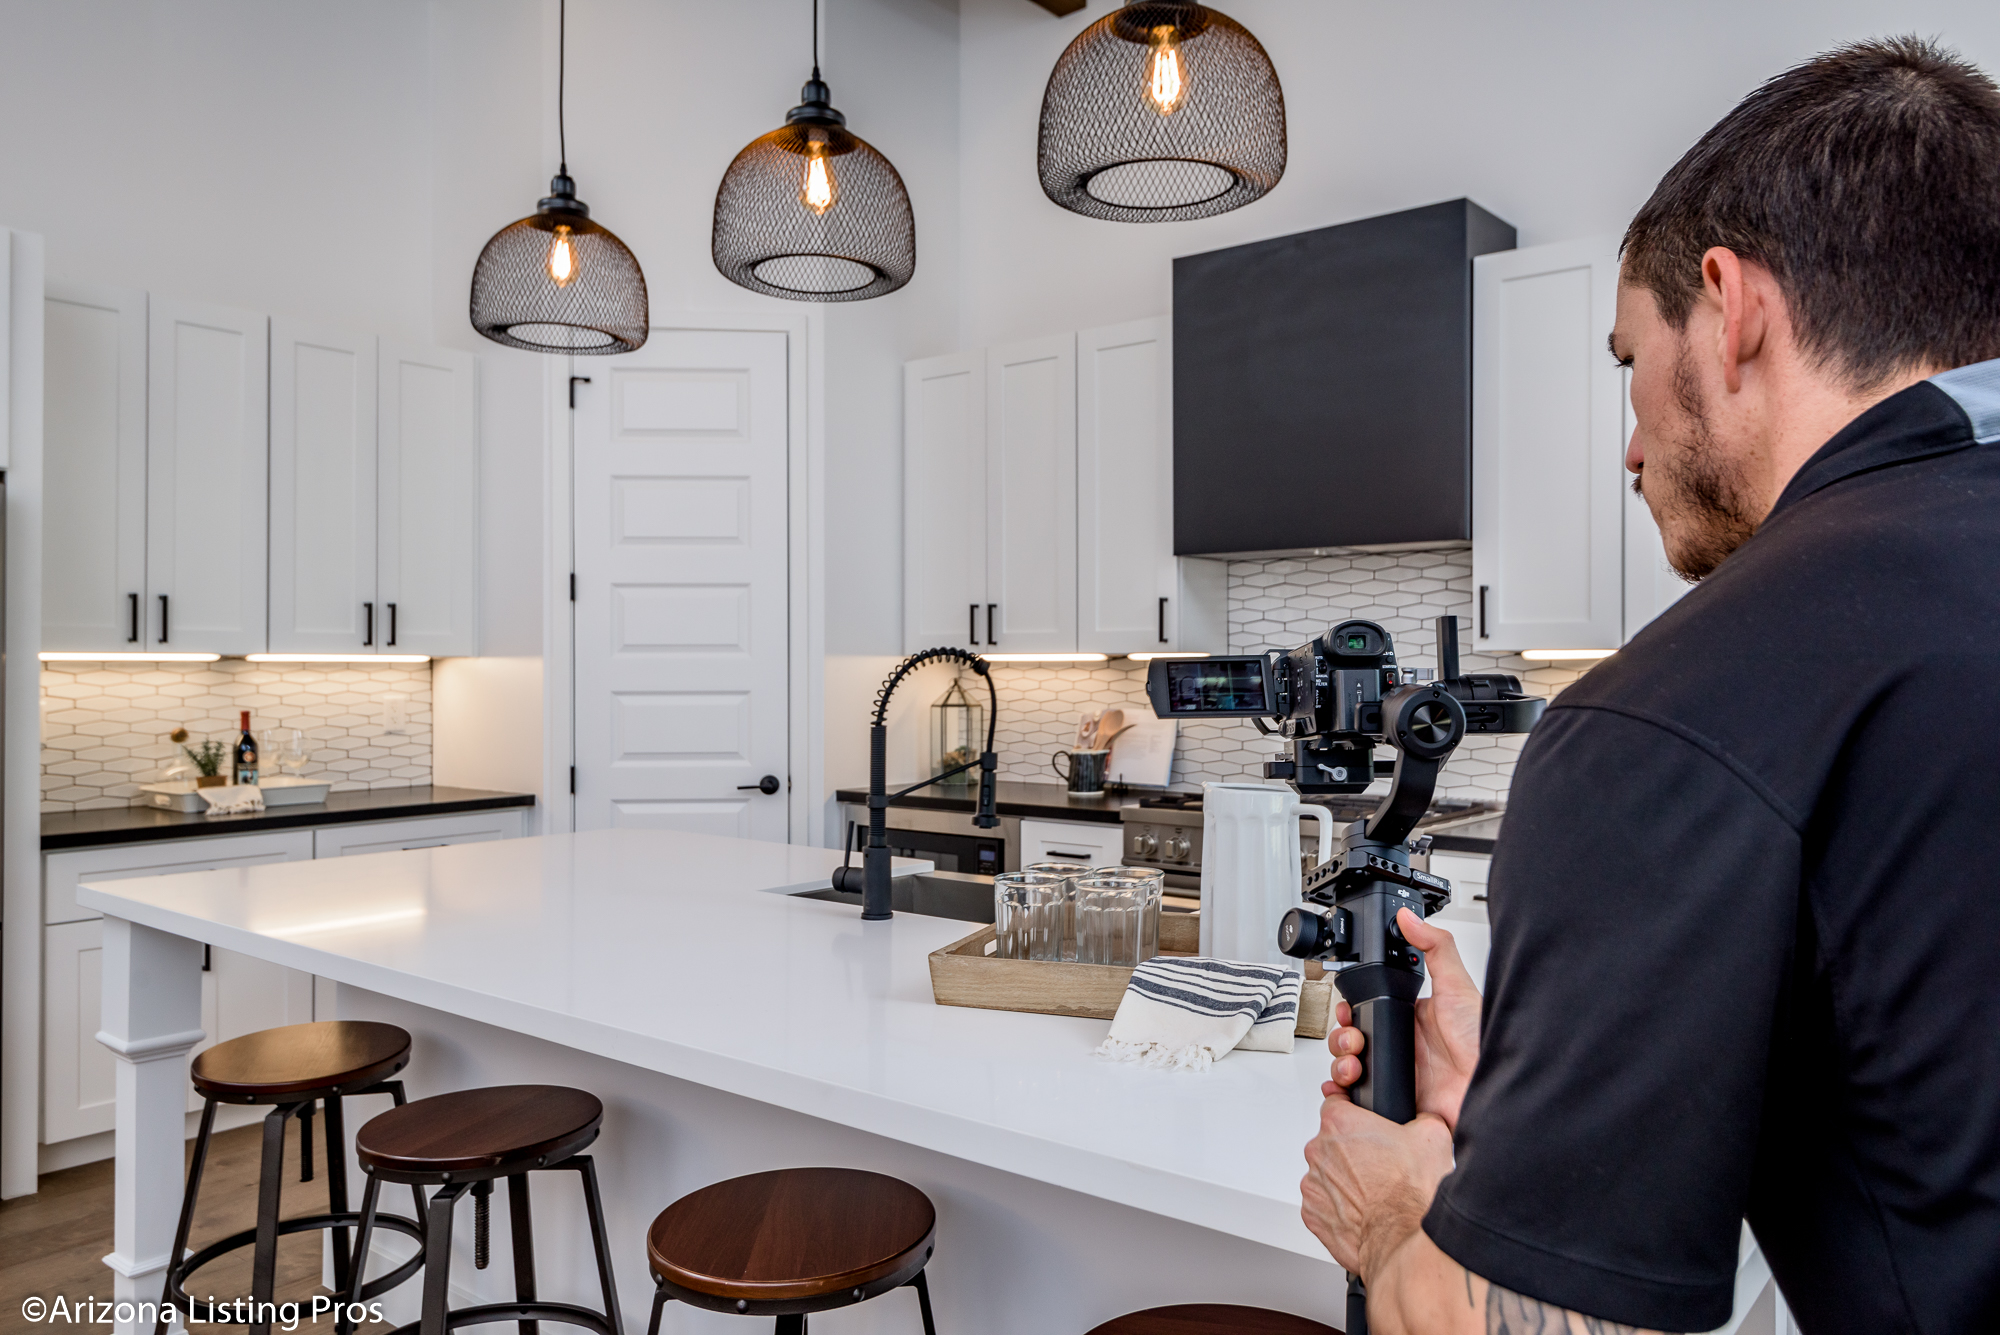 Why You Should Consider Using Real Estate Videography For Your Listings